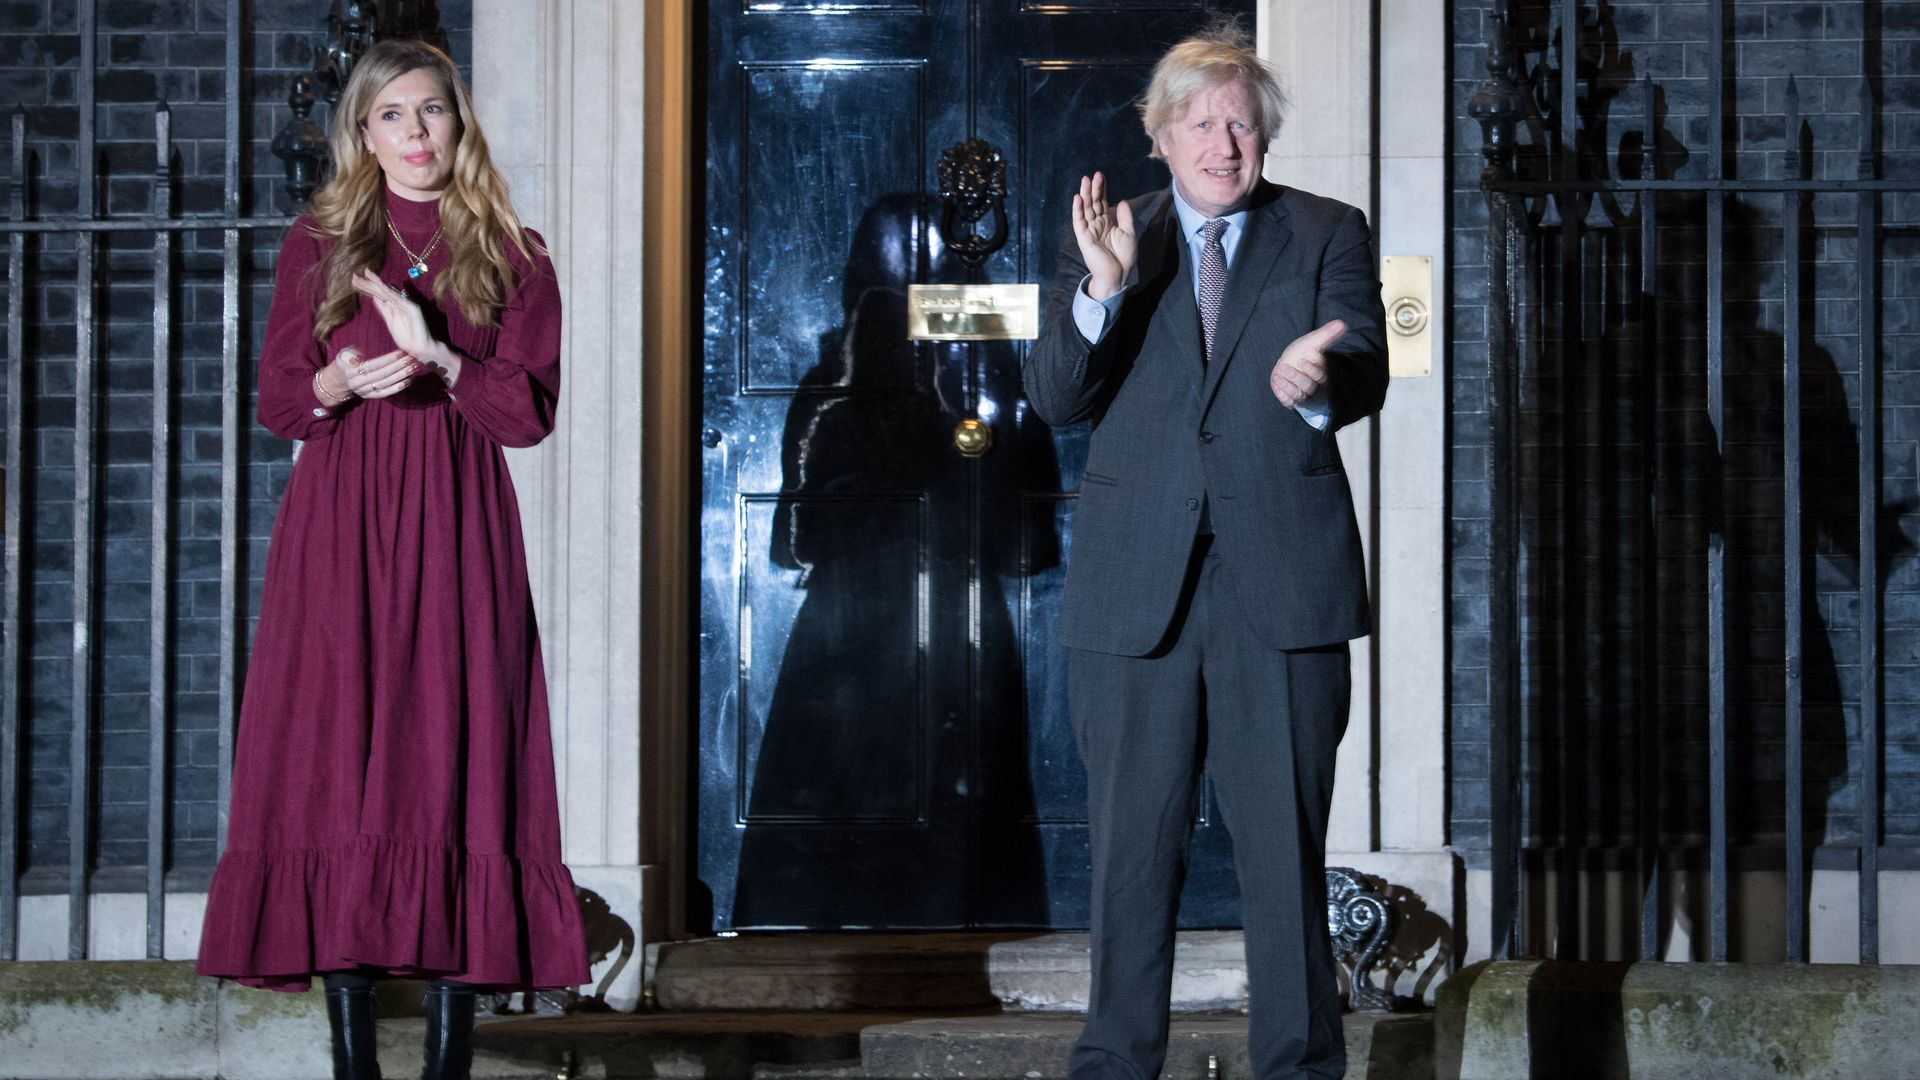 Prime Minister Boris Johnson and his partner Carrie Symonds stand outside 10 Downing Street to join in with a nationwide clap - Credit: PA